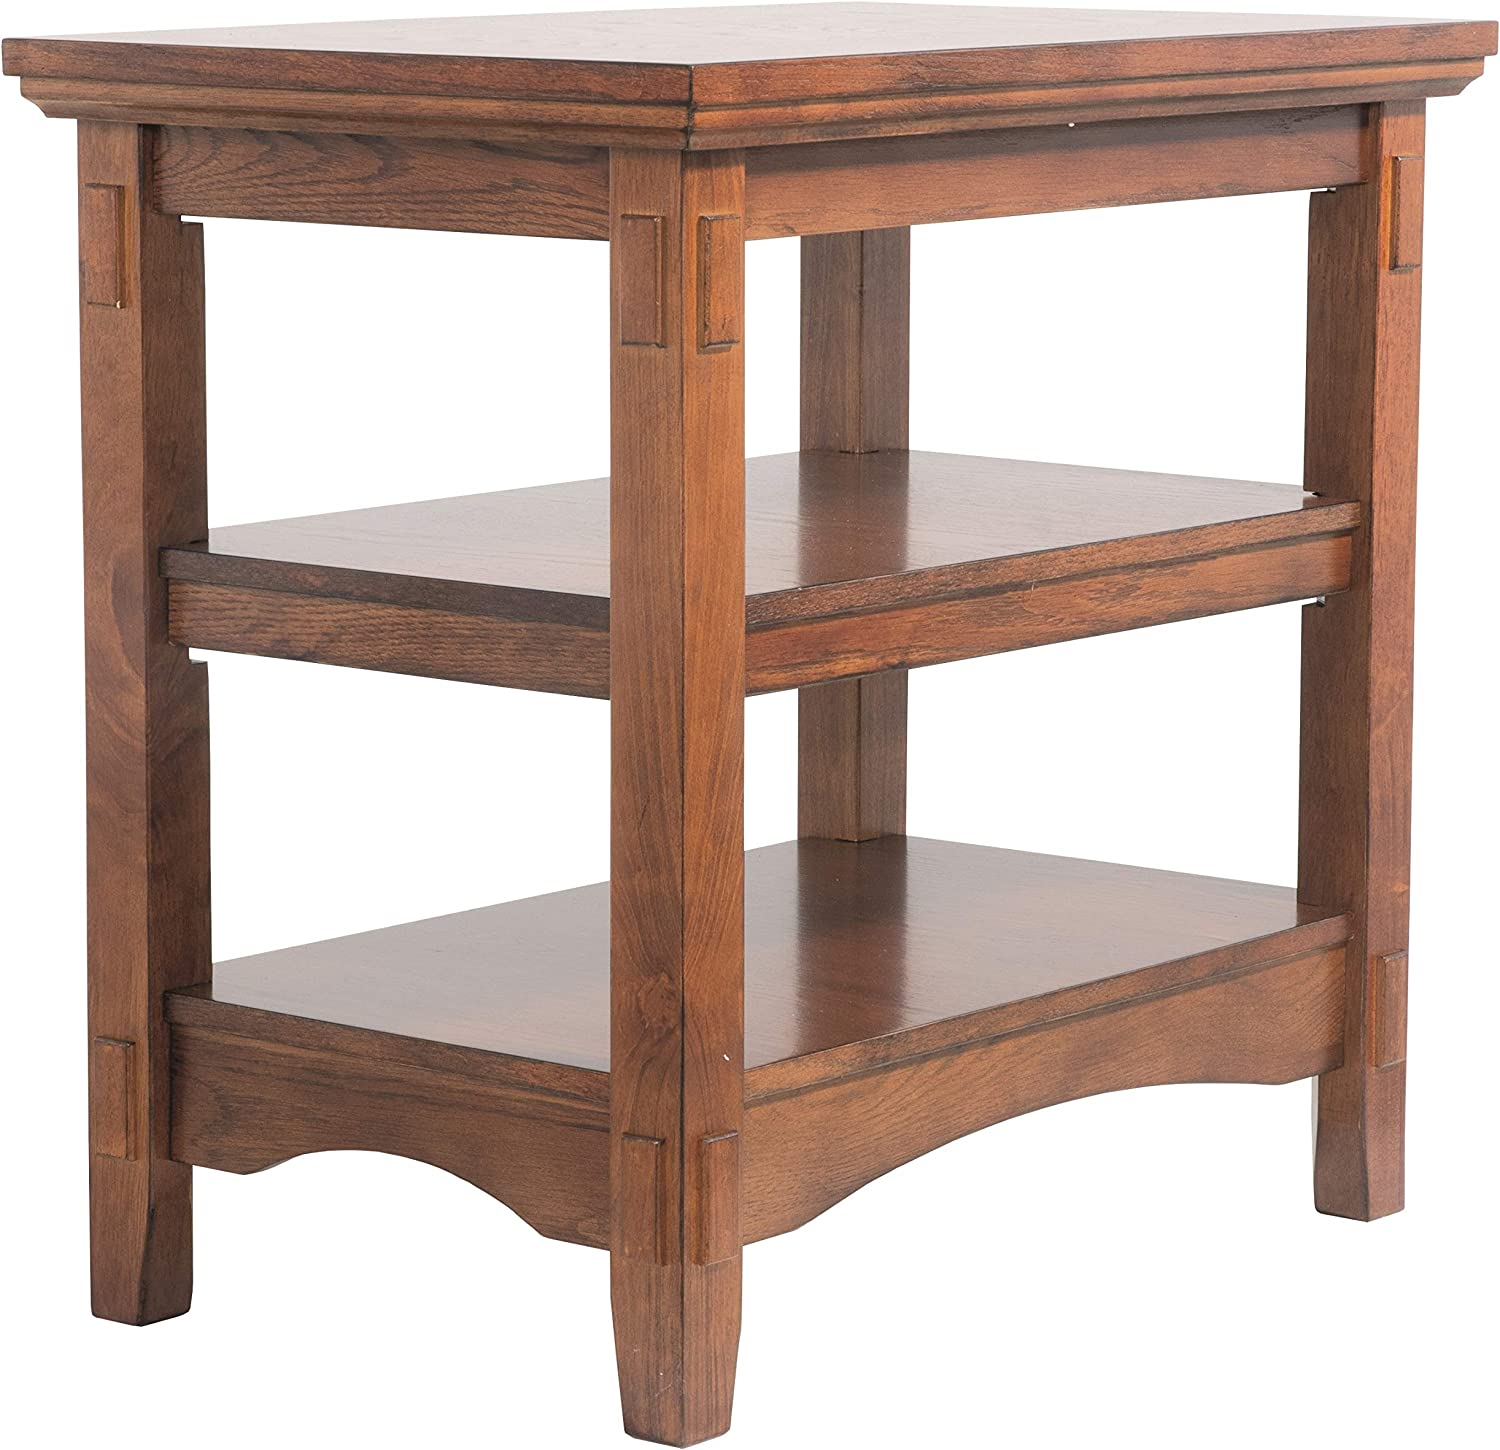 Benjara Wooden End Table with Mortise and Tenon Joints Brown